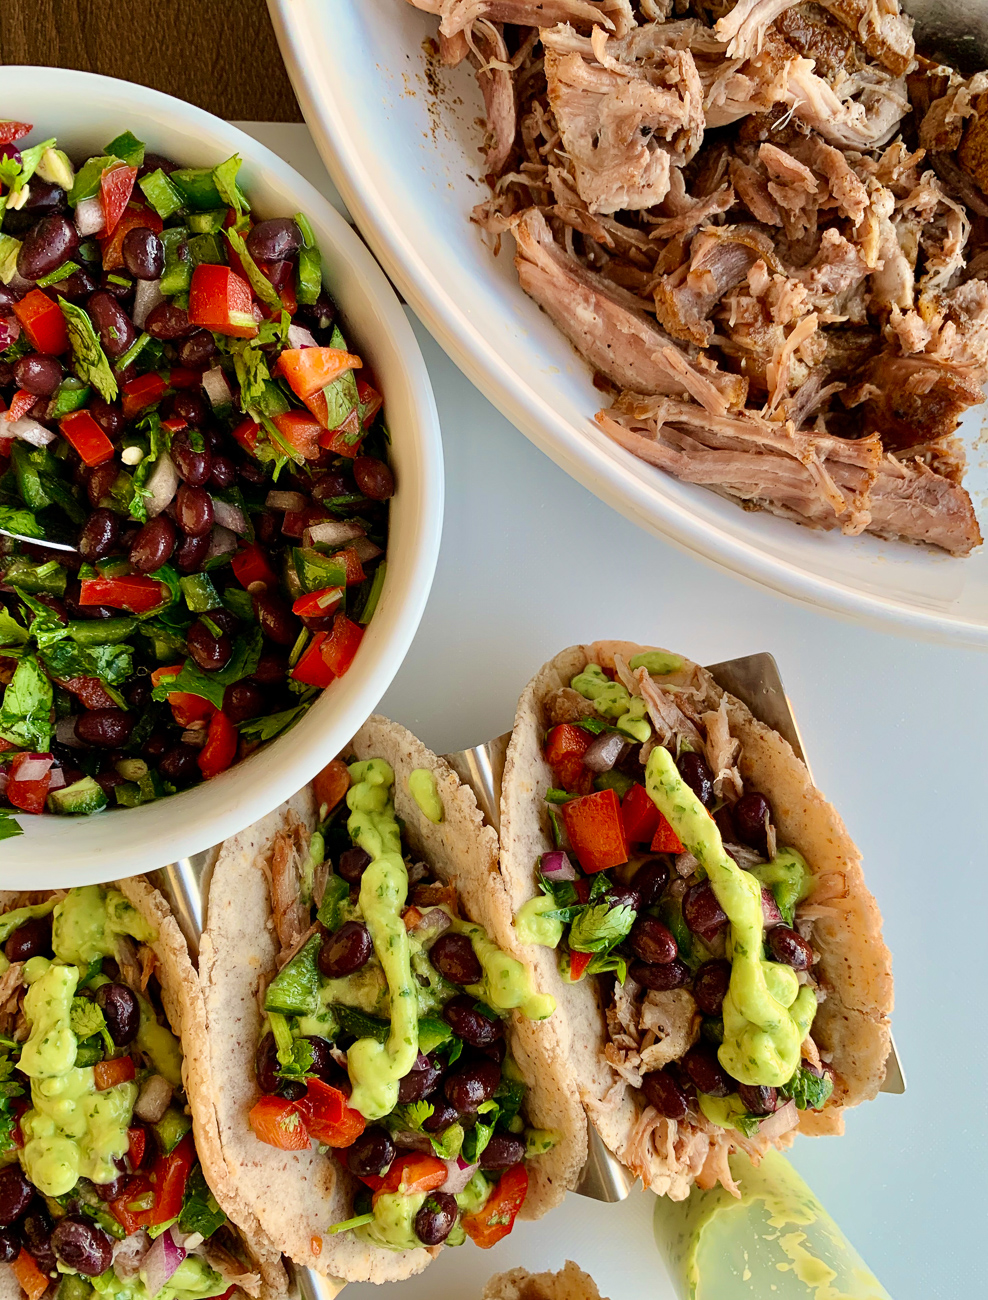 TACOS with pork carnitas and black bean salad